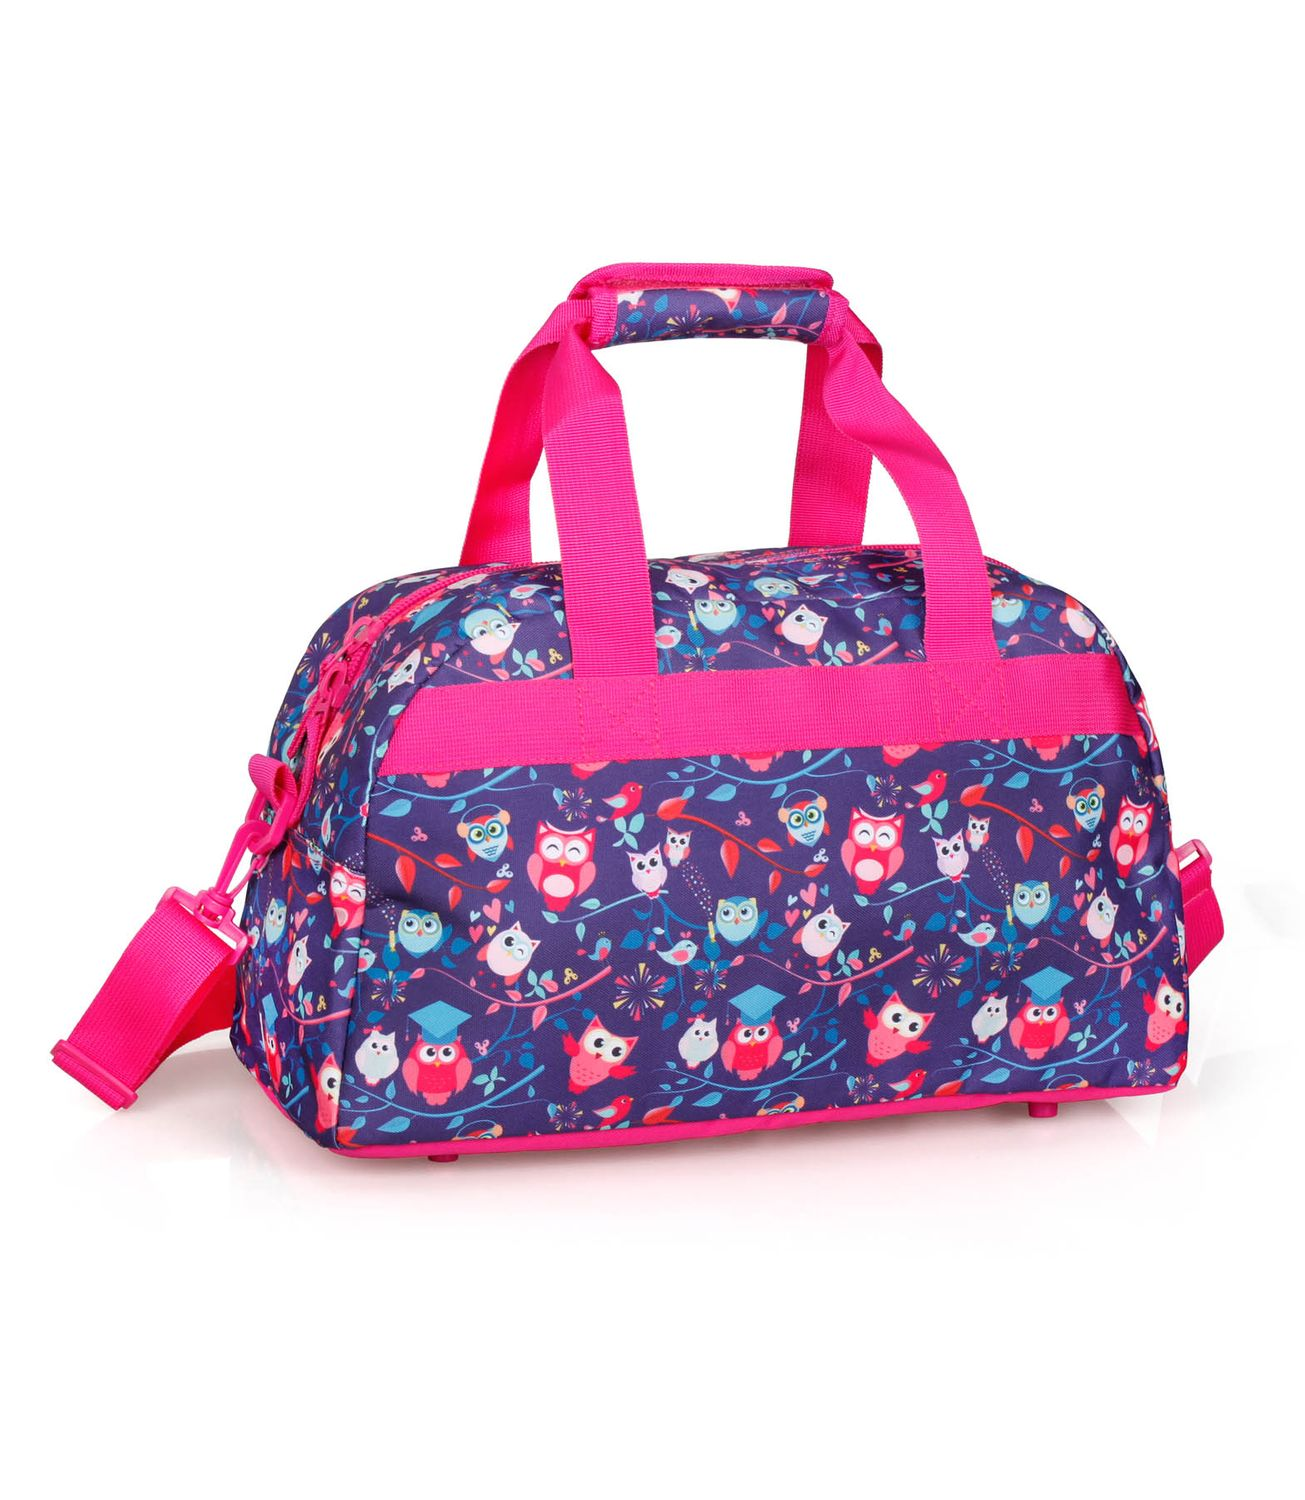 Holdall Travel Bag PINK OWLS – image 2